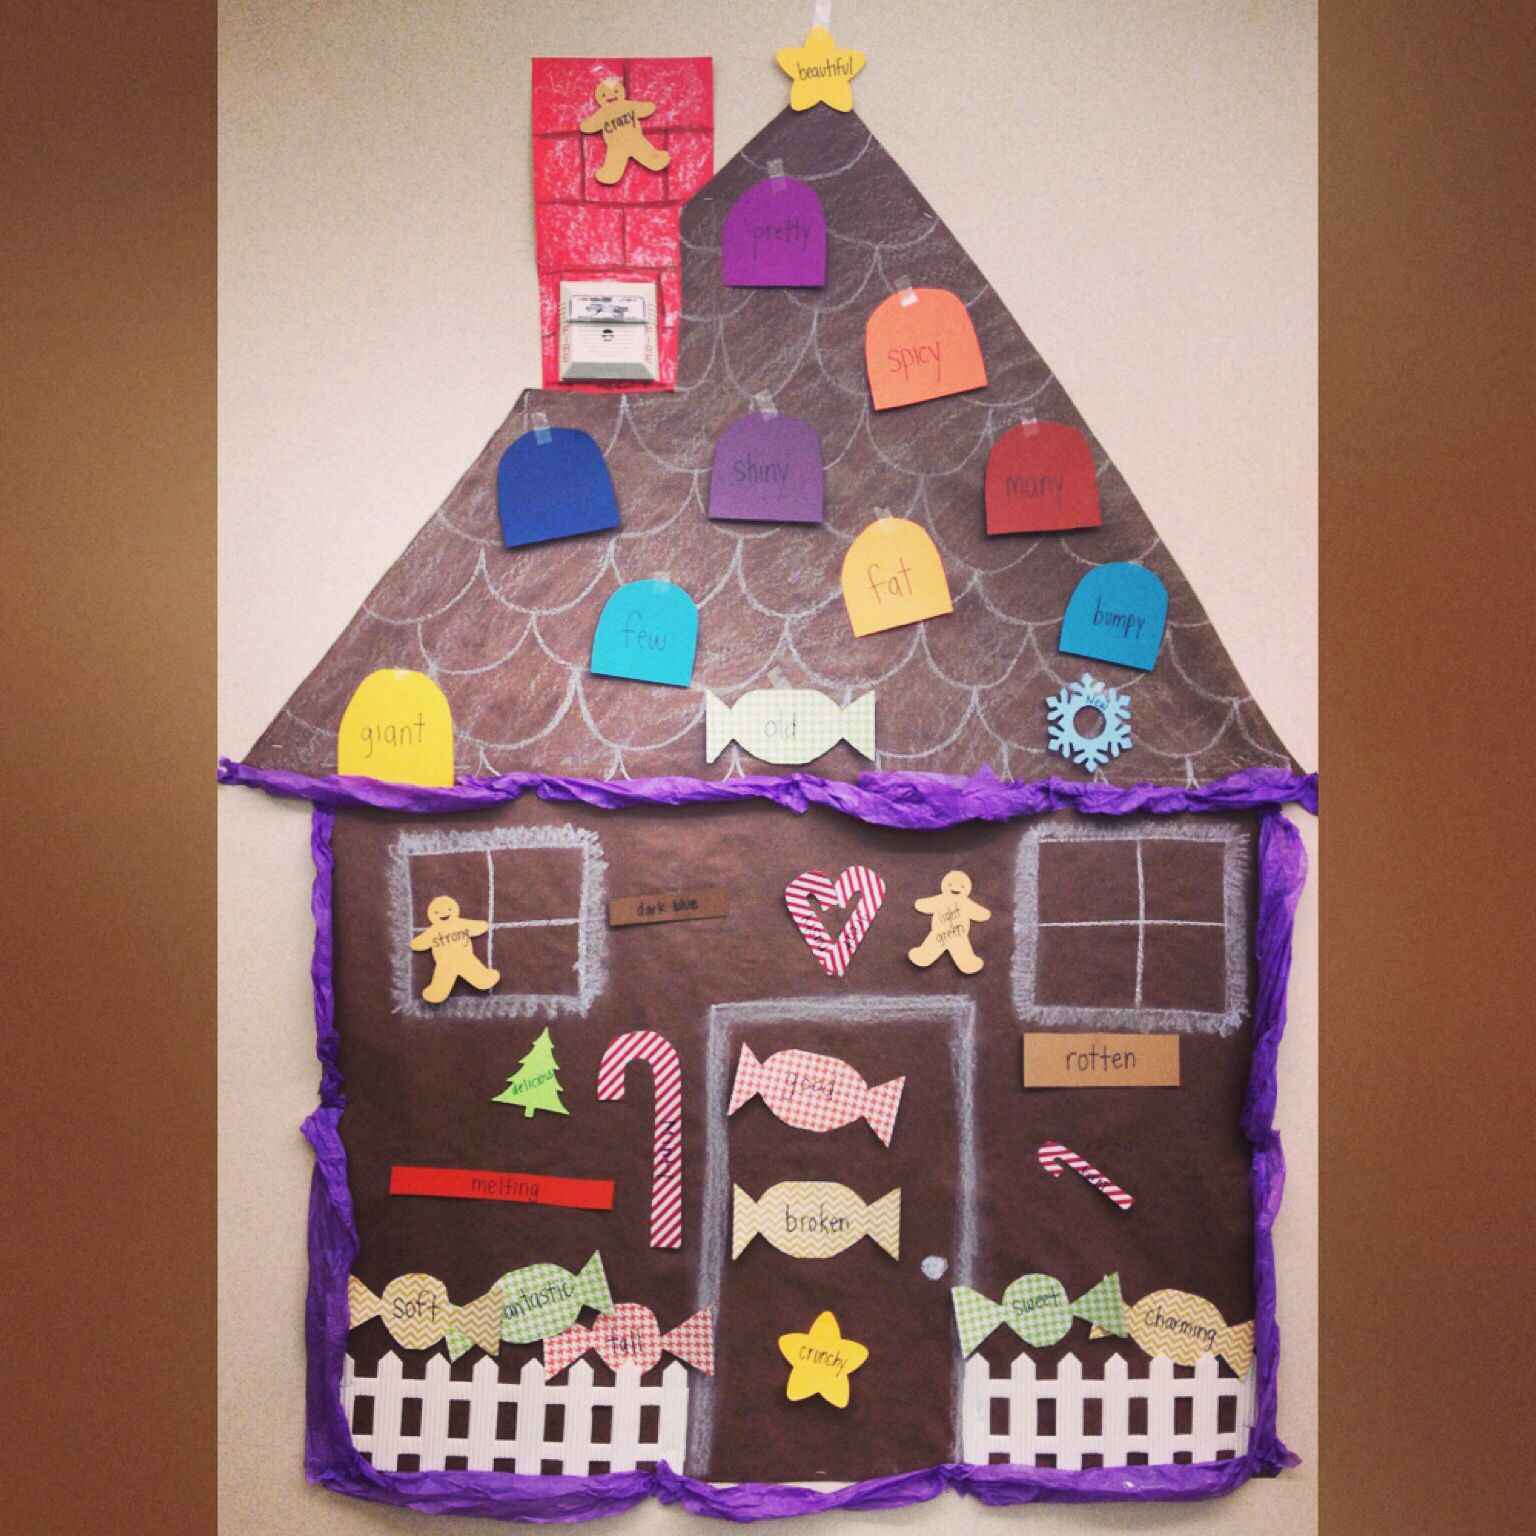 An Adjective Gingerbread House My First Graders Made To